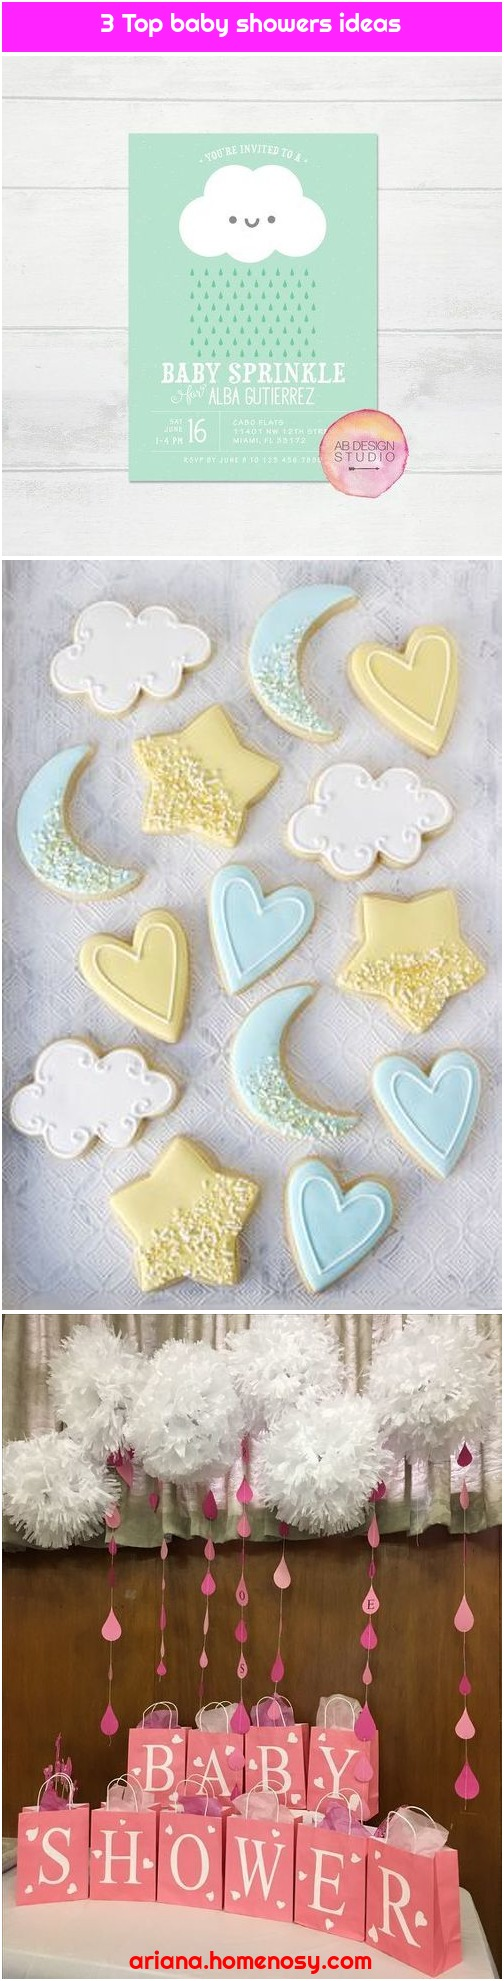 3 Top baby showers ideas